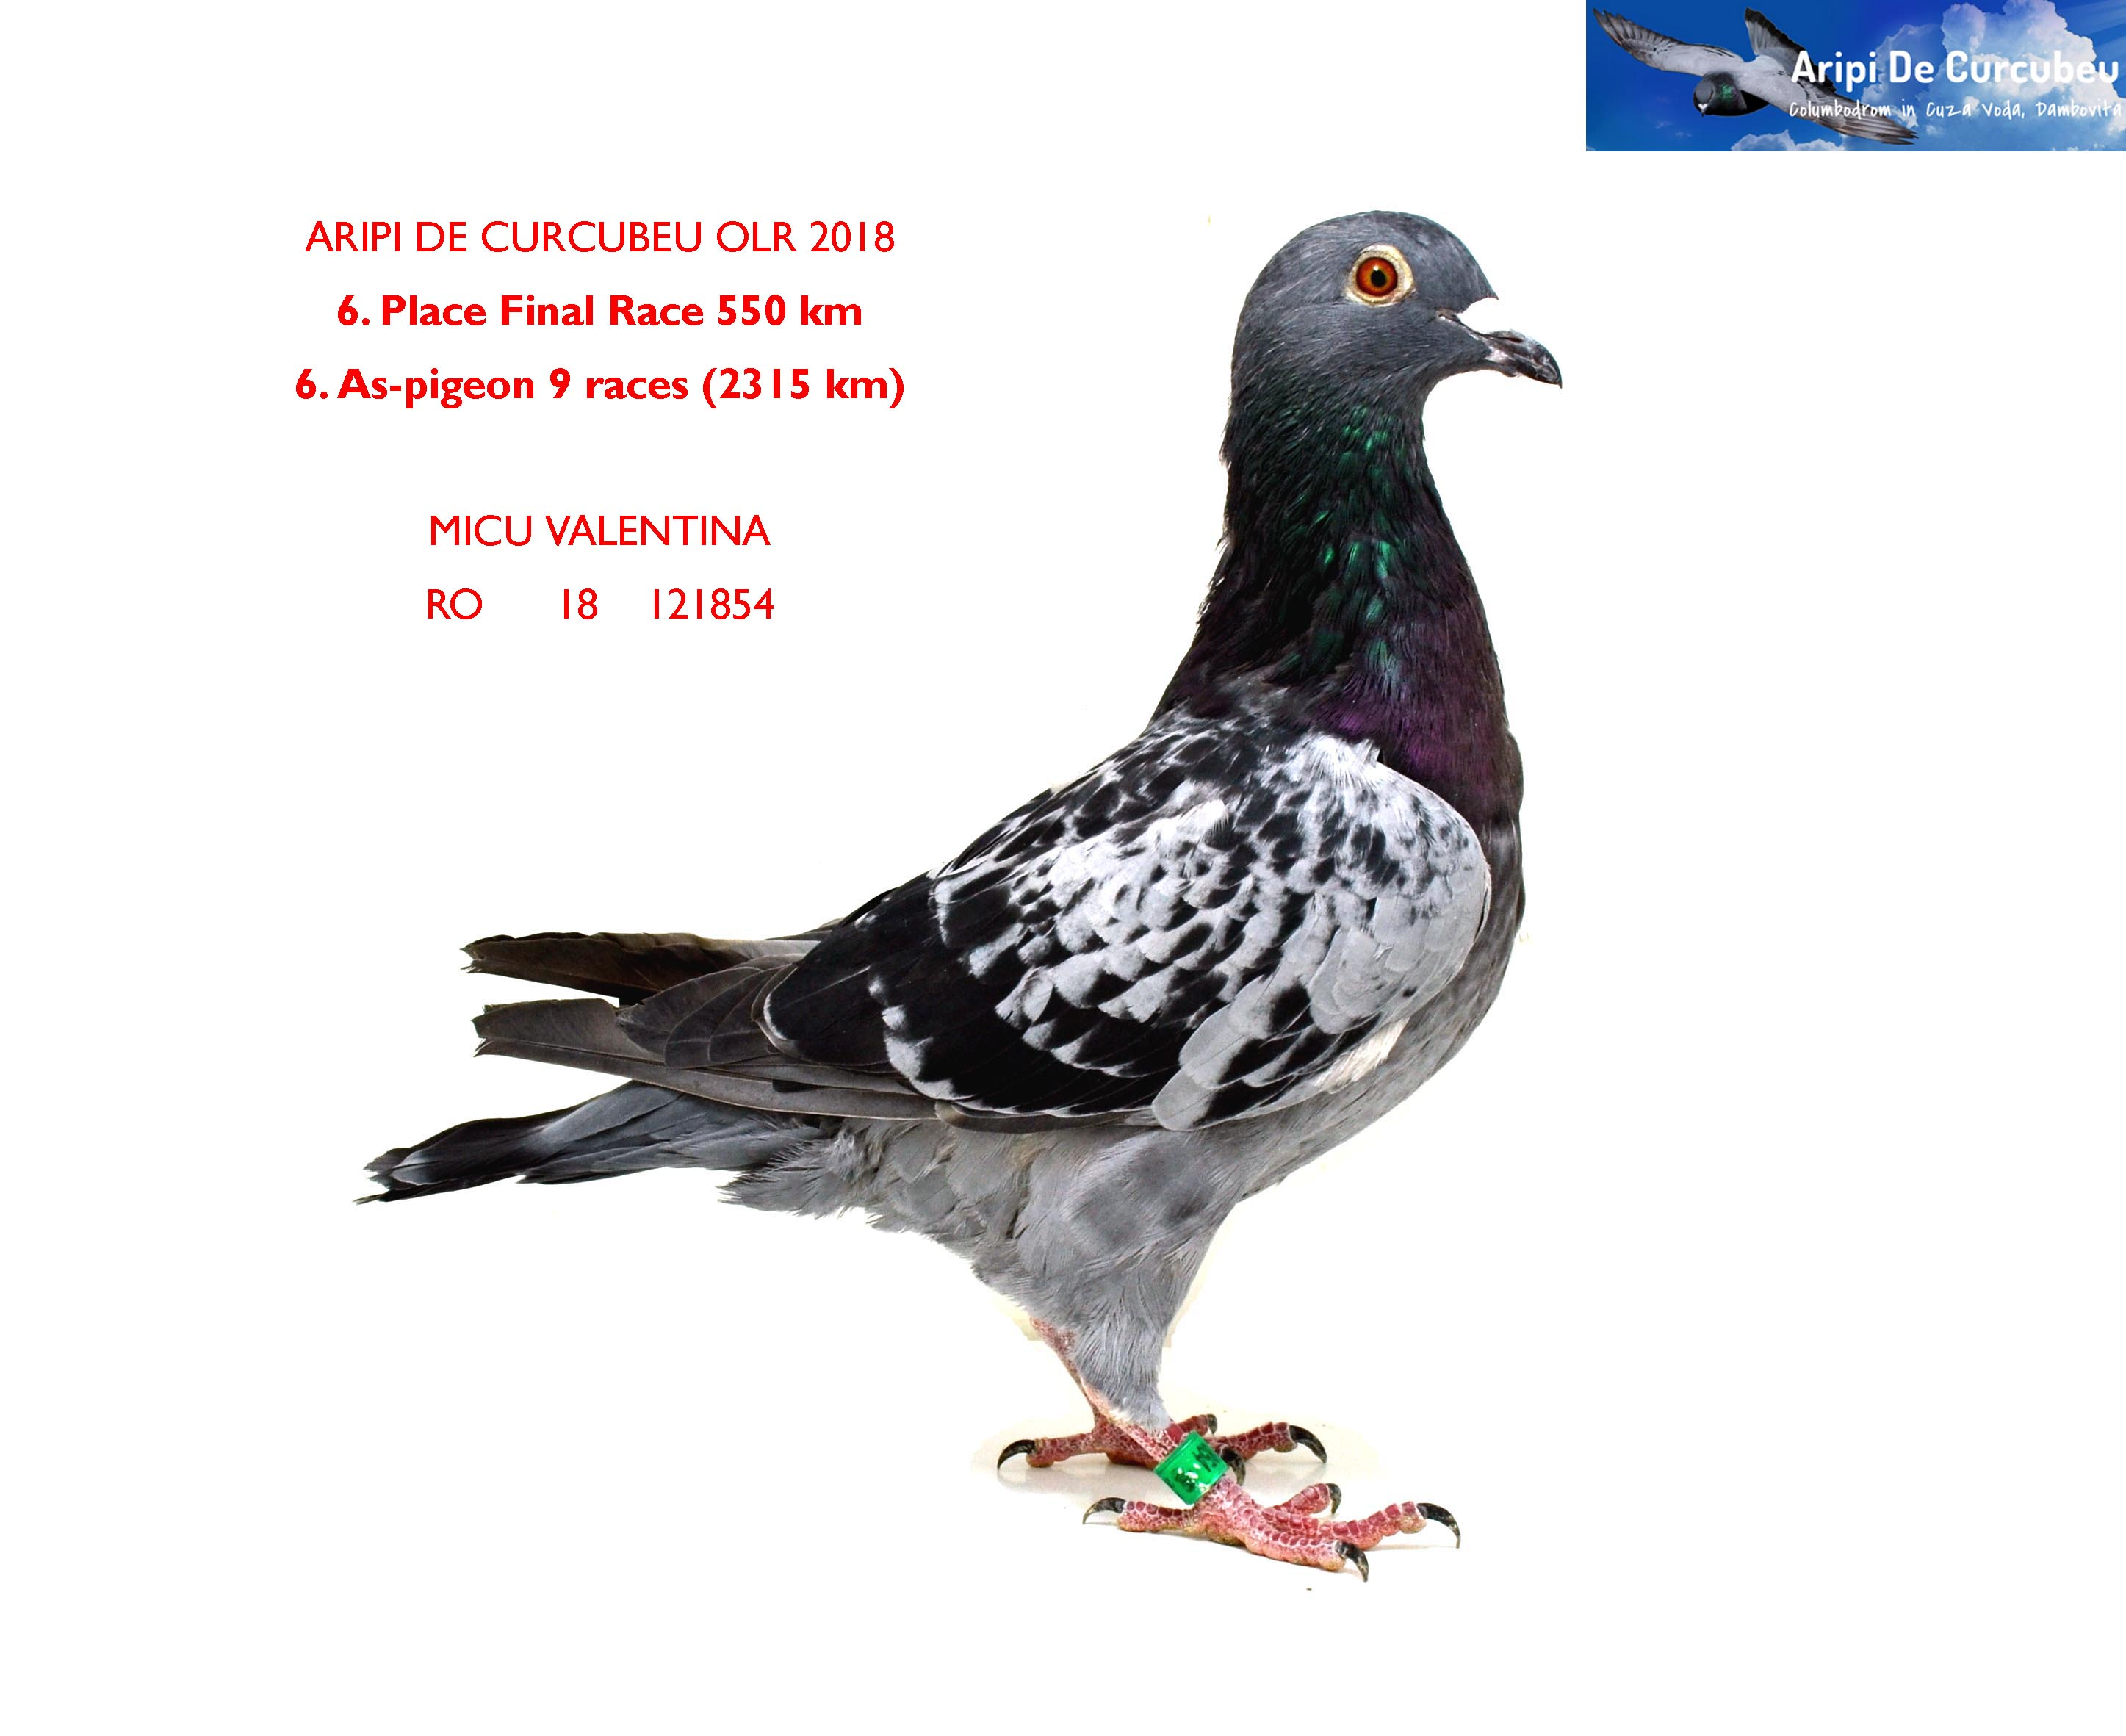 6 FINAL RACE + 6 AS-PIGEON MICU VALENTINA      	RO      18    121854